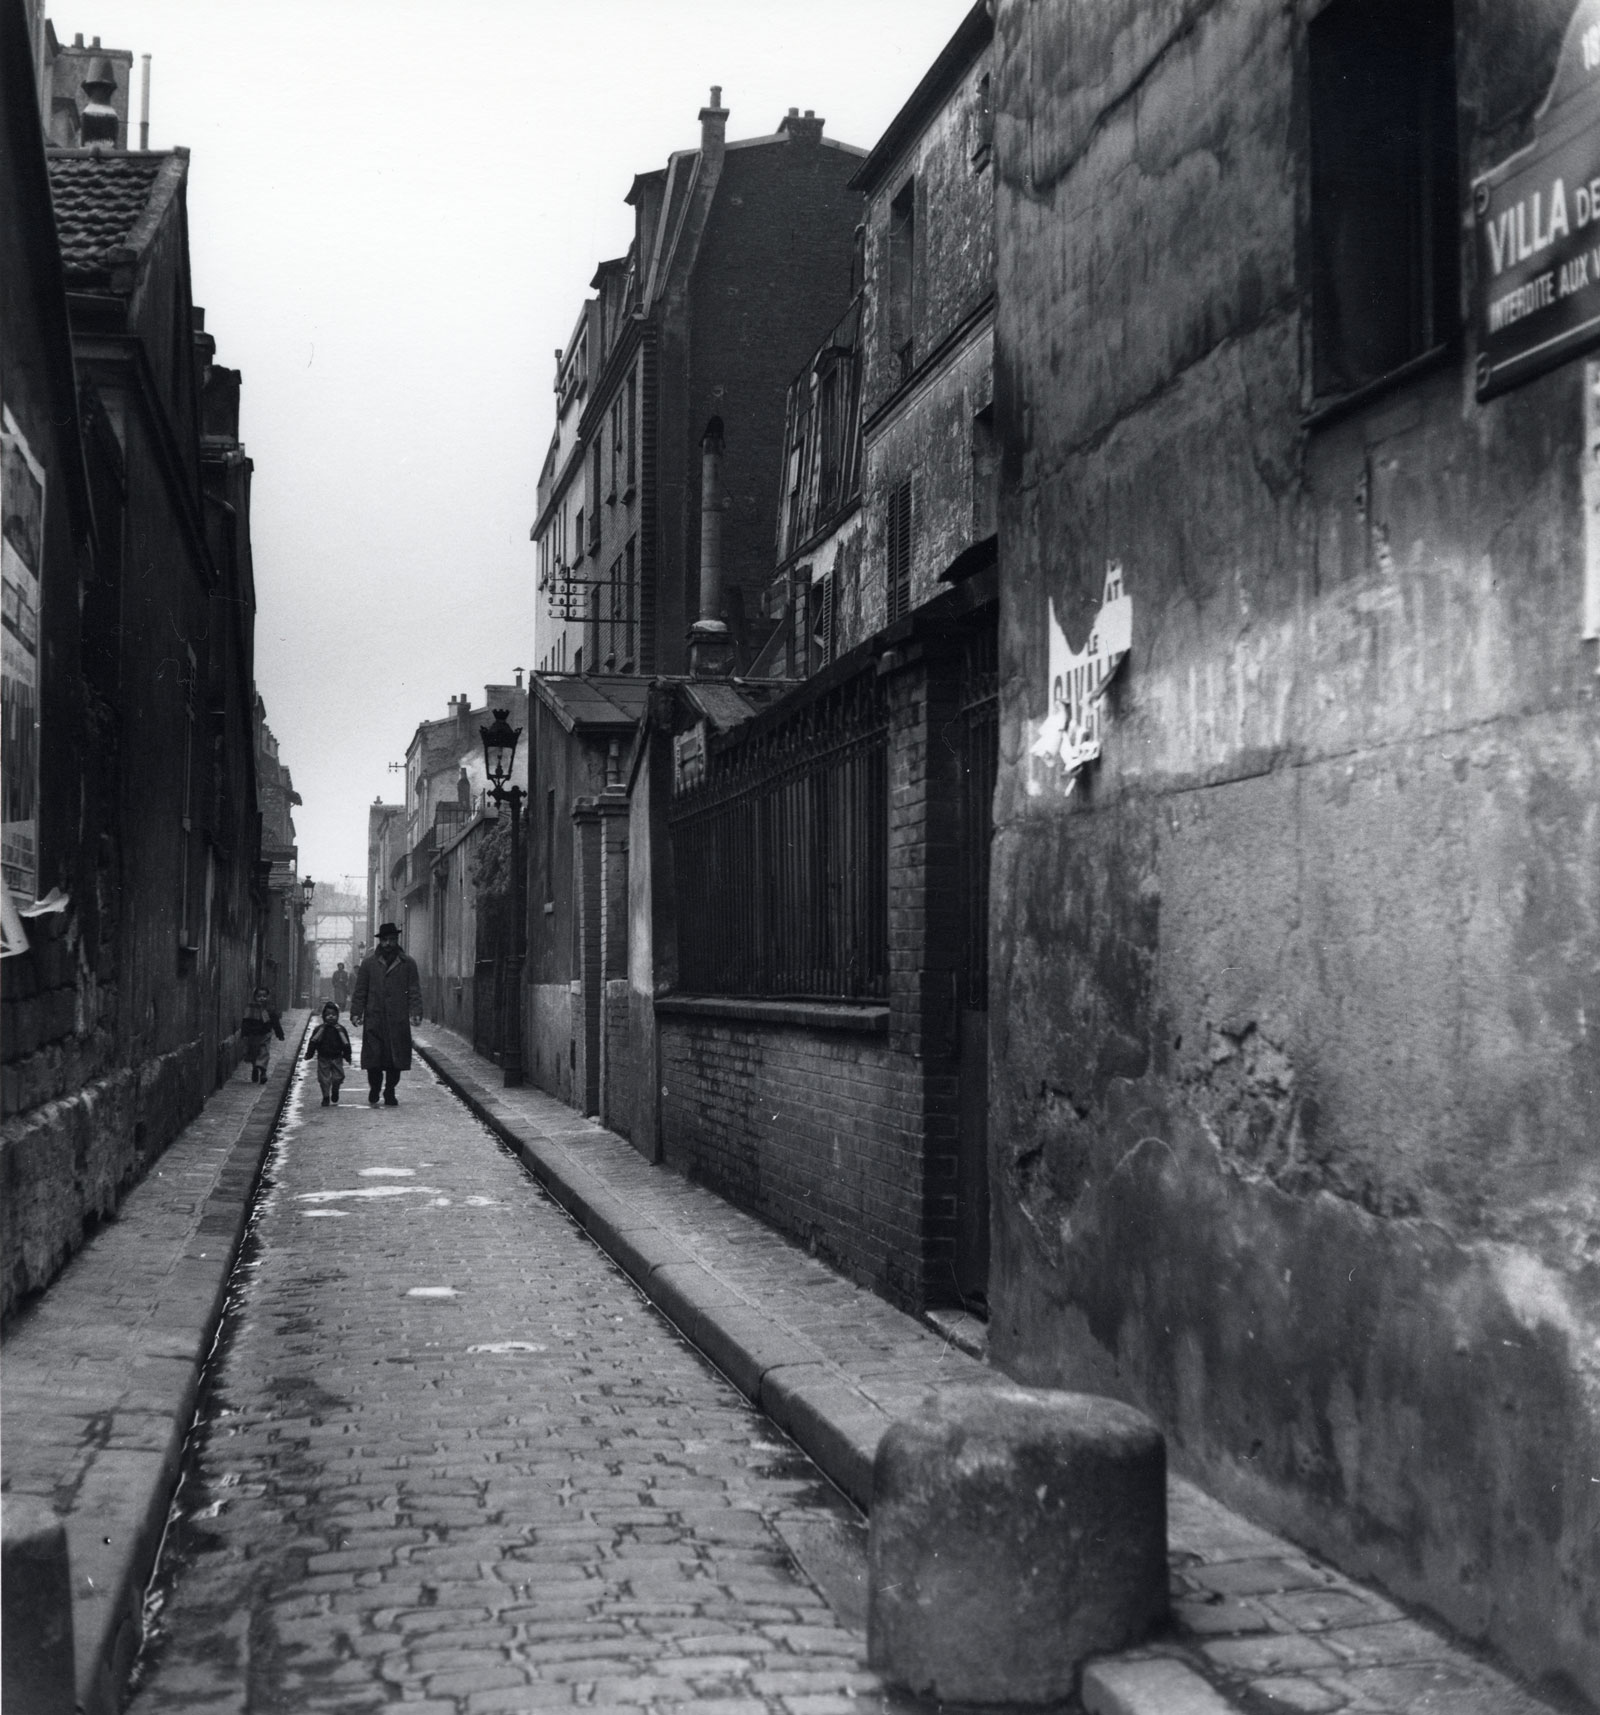 Villa des Tulipes, a street in the eighteenth arrondissement, photographed by Dorothy Bohm, Paris, 1953